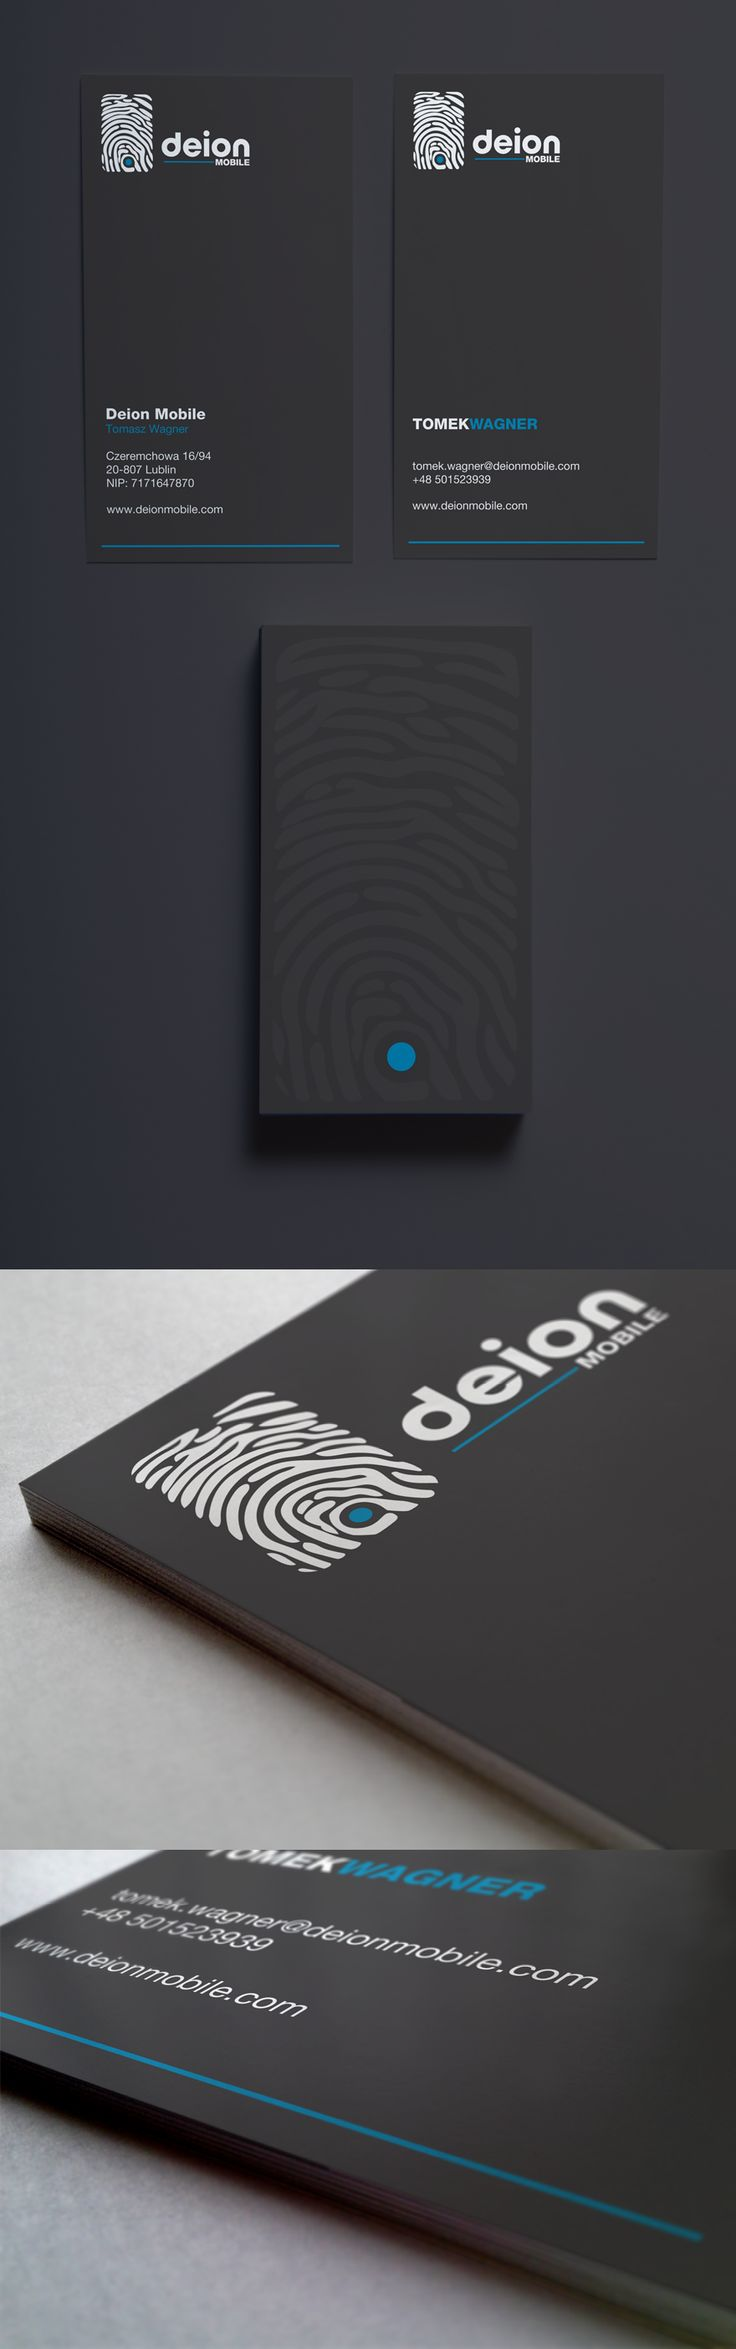 Deion Mobile | #Business #Card #letterpress #creative #paper #businesscard #corporate #design #visitenkarte #corporatedesign < repinned by www.BlickeDeeler.de